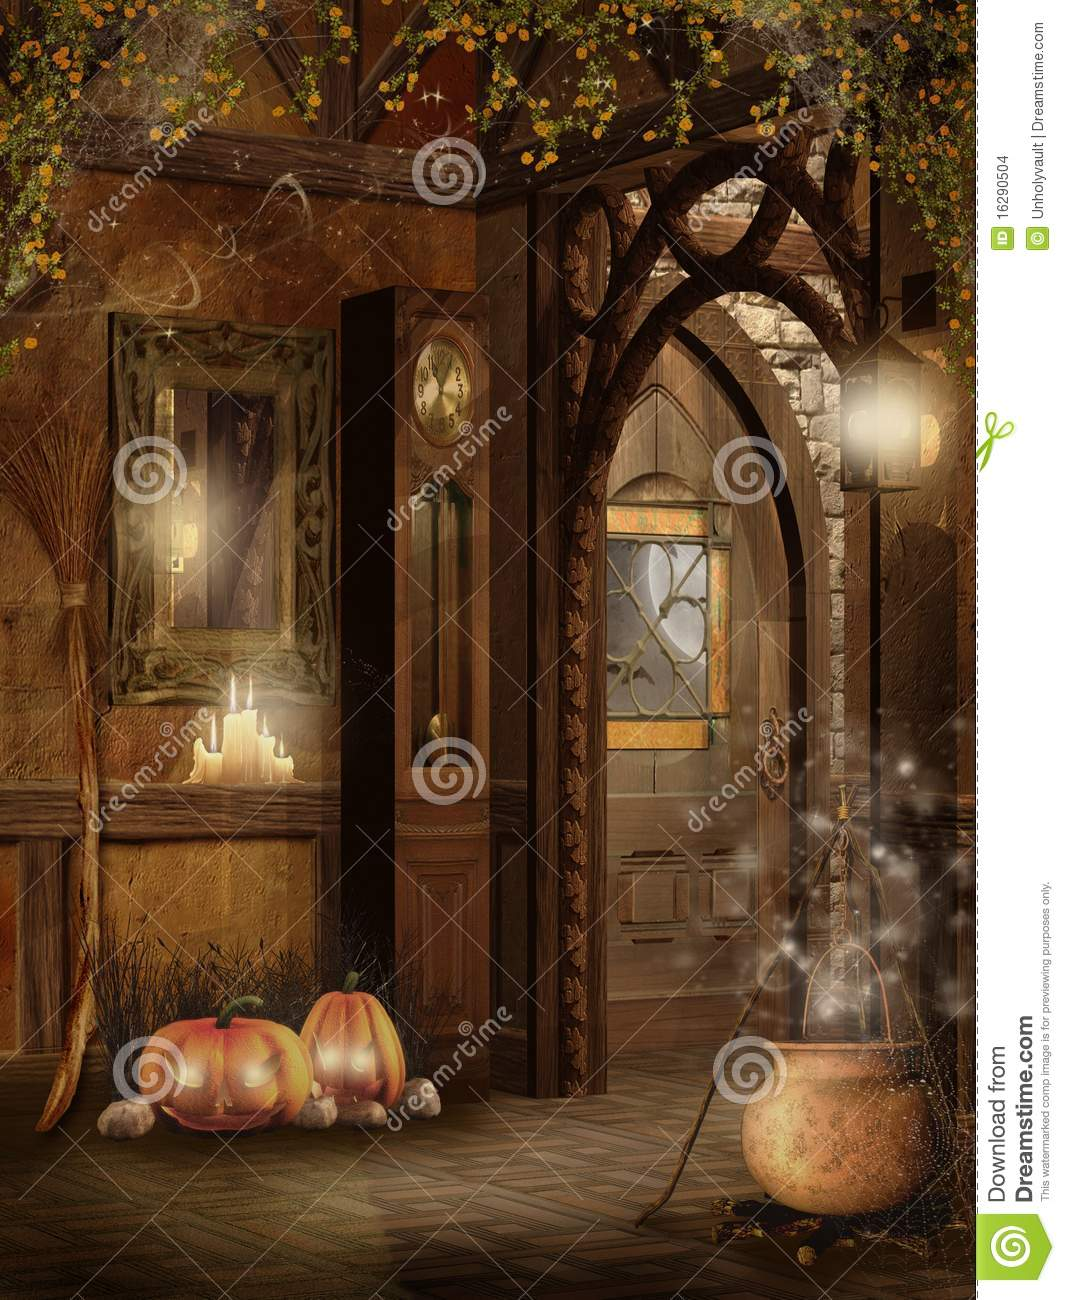 Cottage Interior With Halloween Decorations Stock